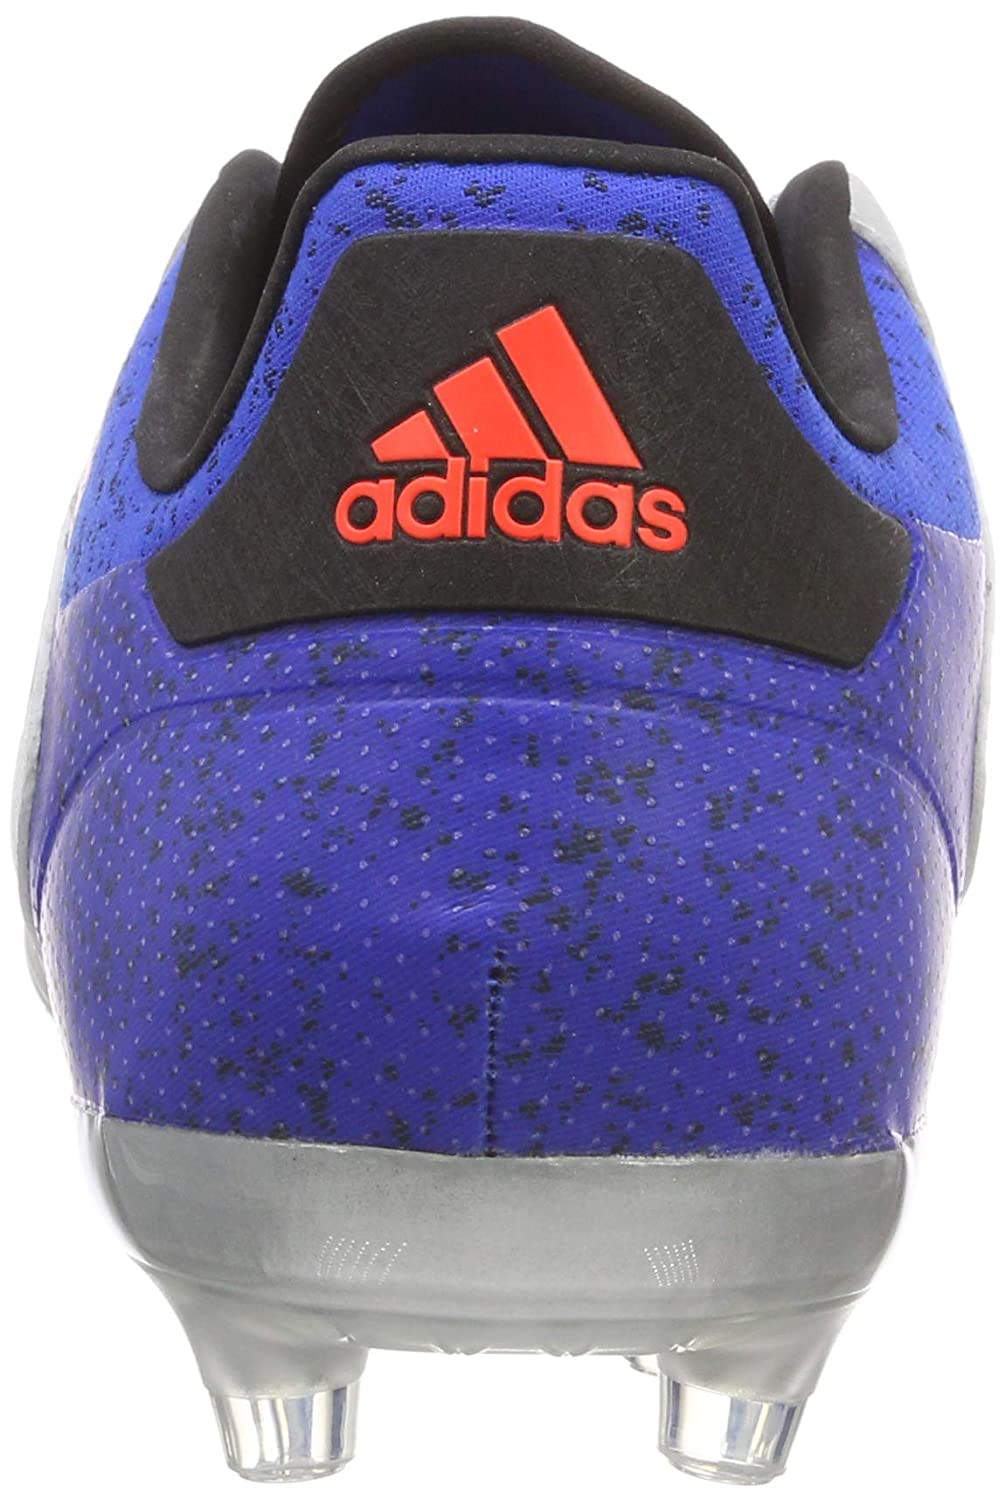 best loved 24b1e d4d77 adidas Copa 18.2 Fg, Scarpe da Calcio Uomo Amazon.it Scarpe